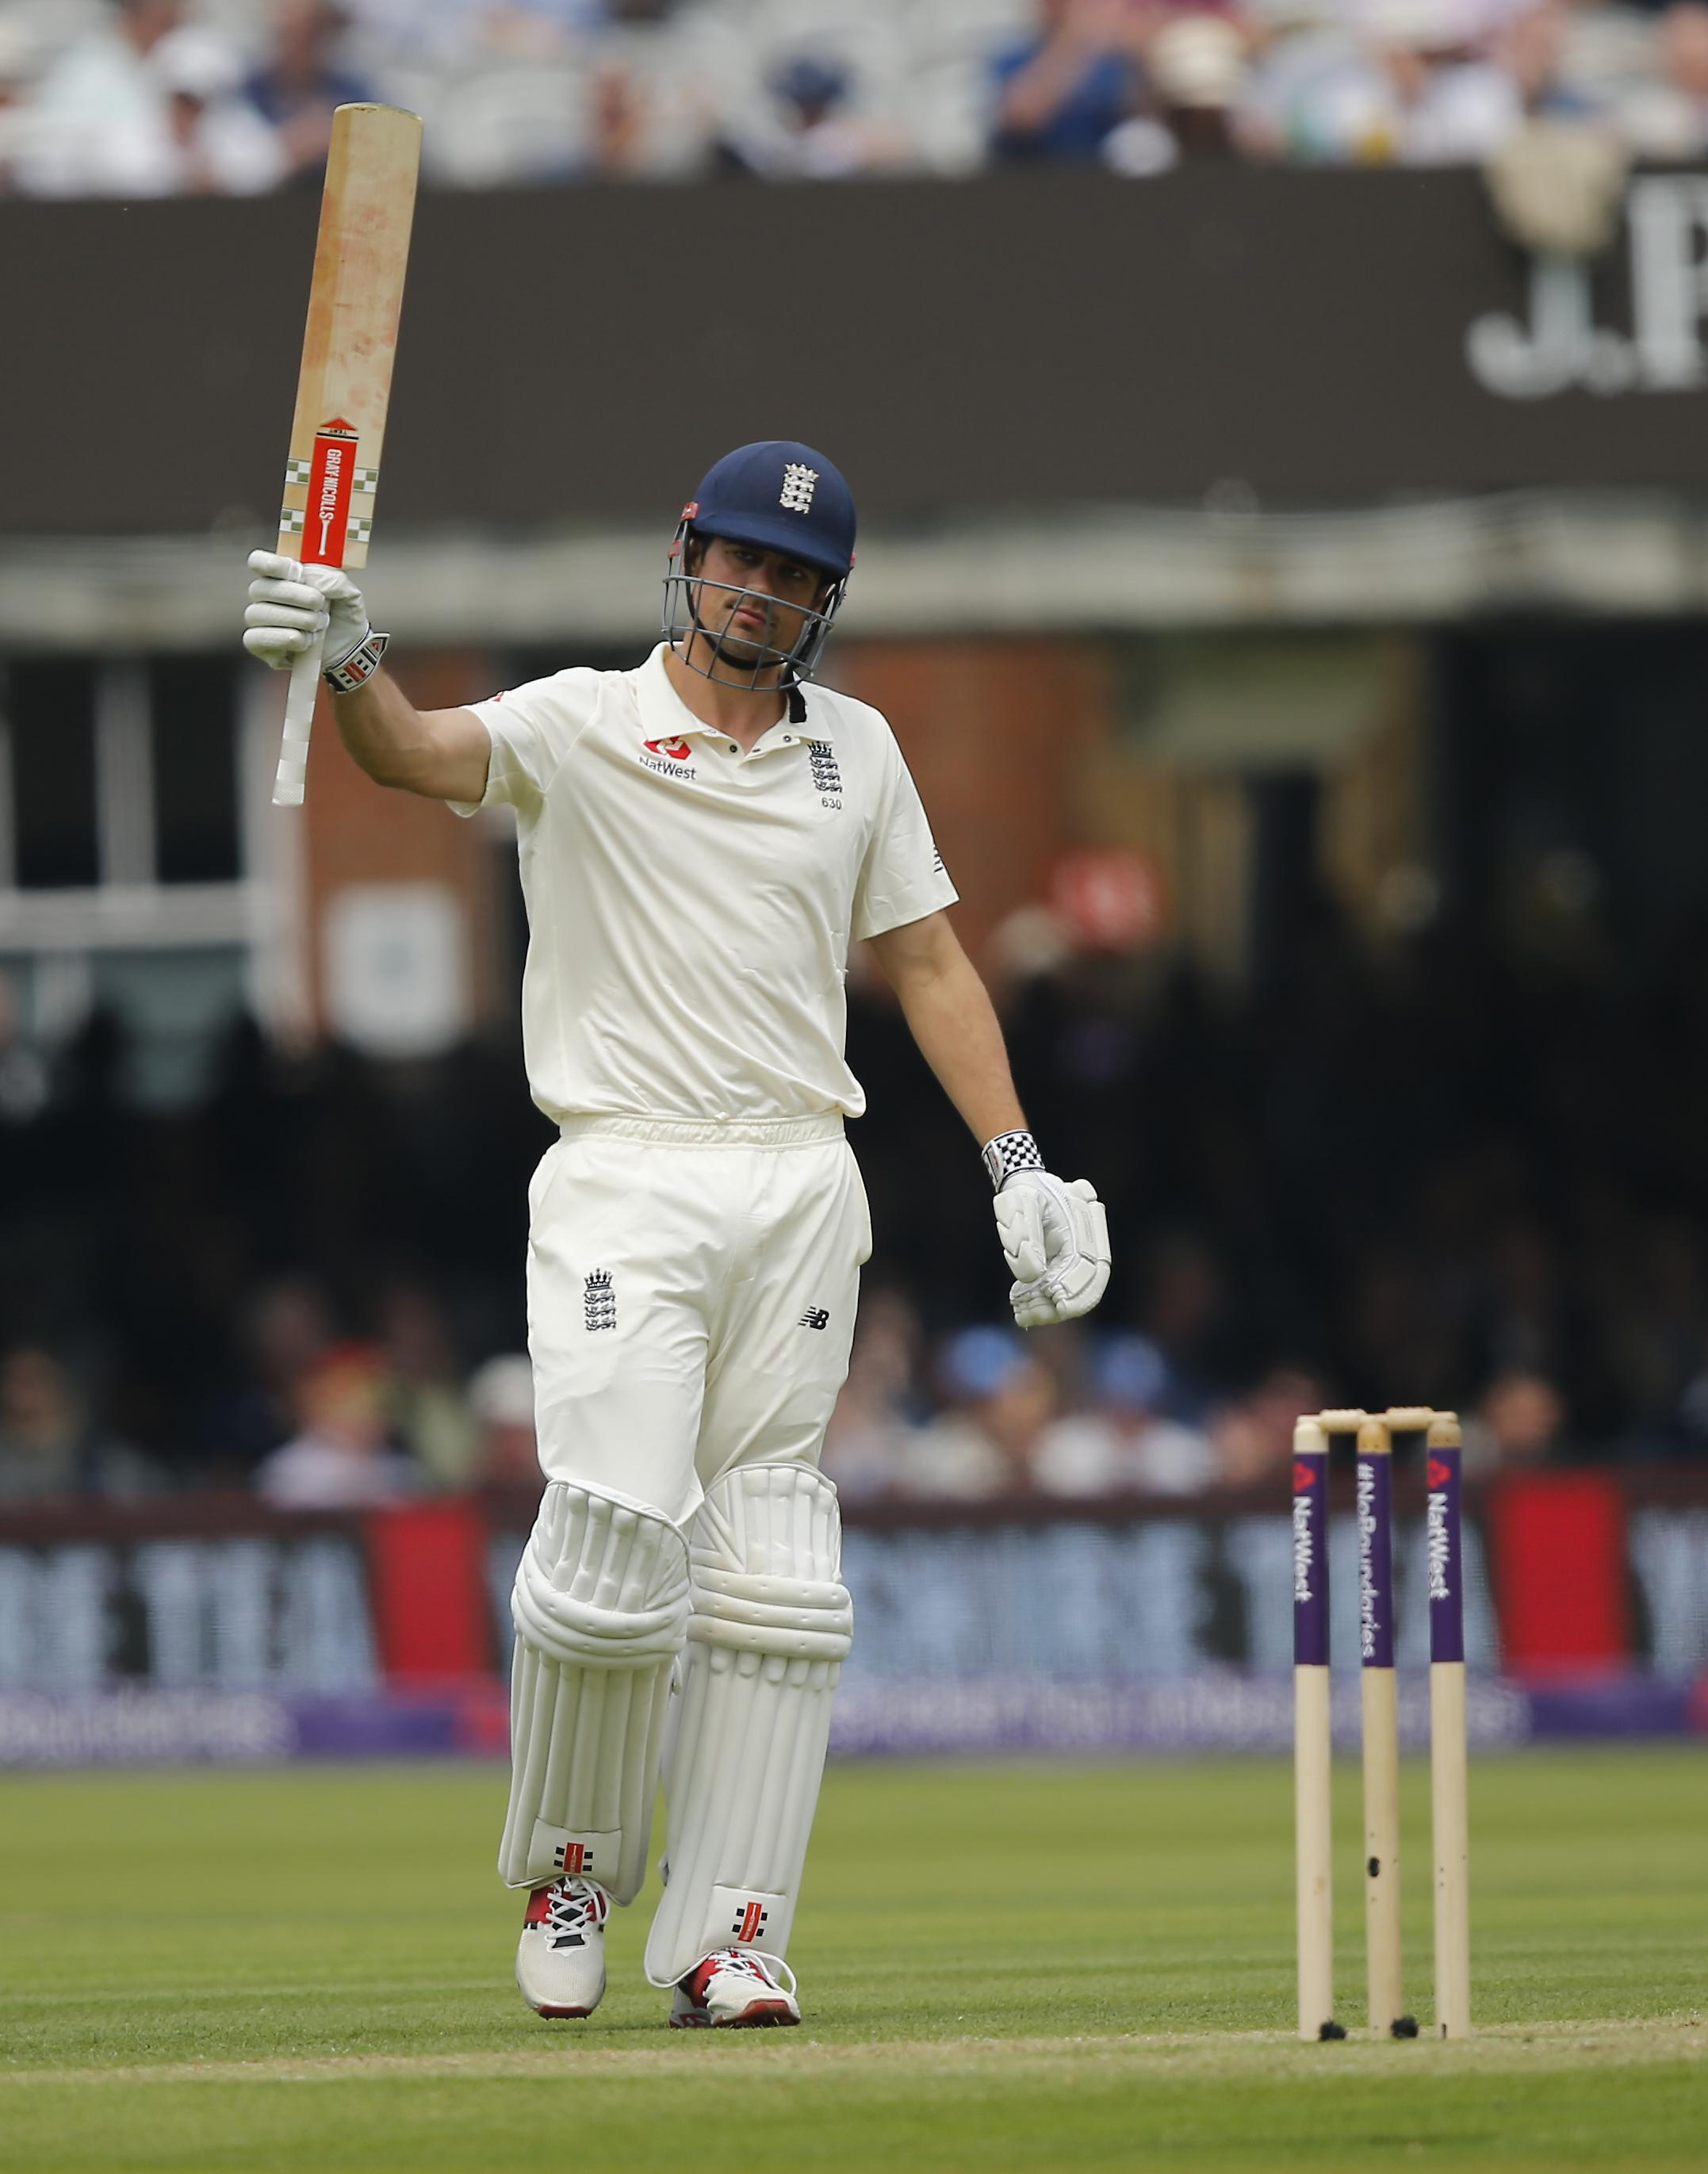 Alastair Cook has announced he will retire from Test cricket